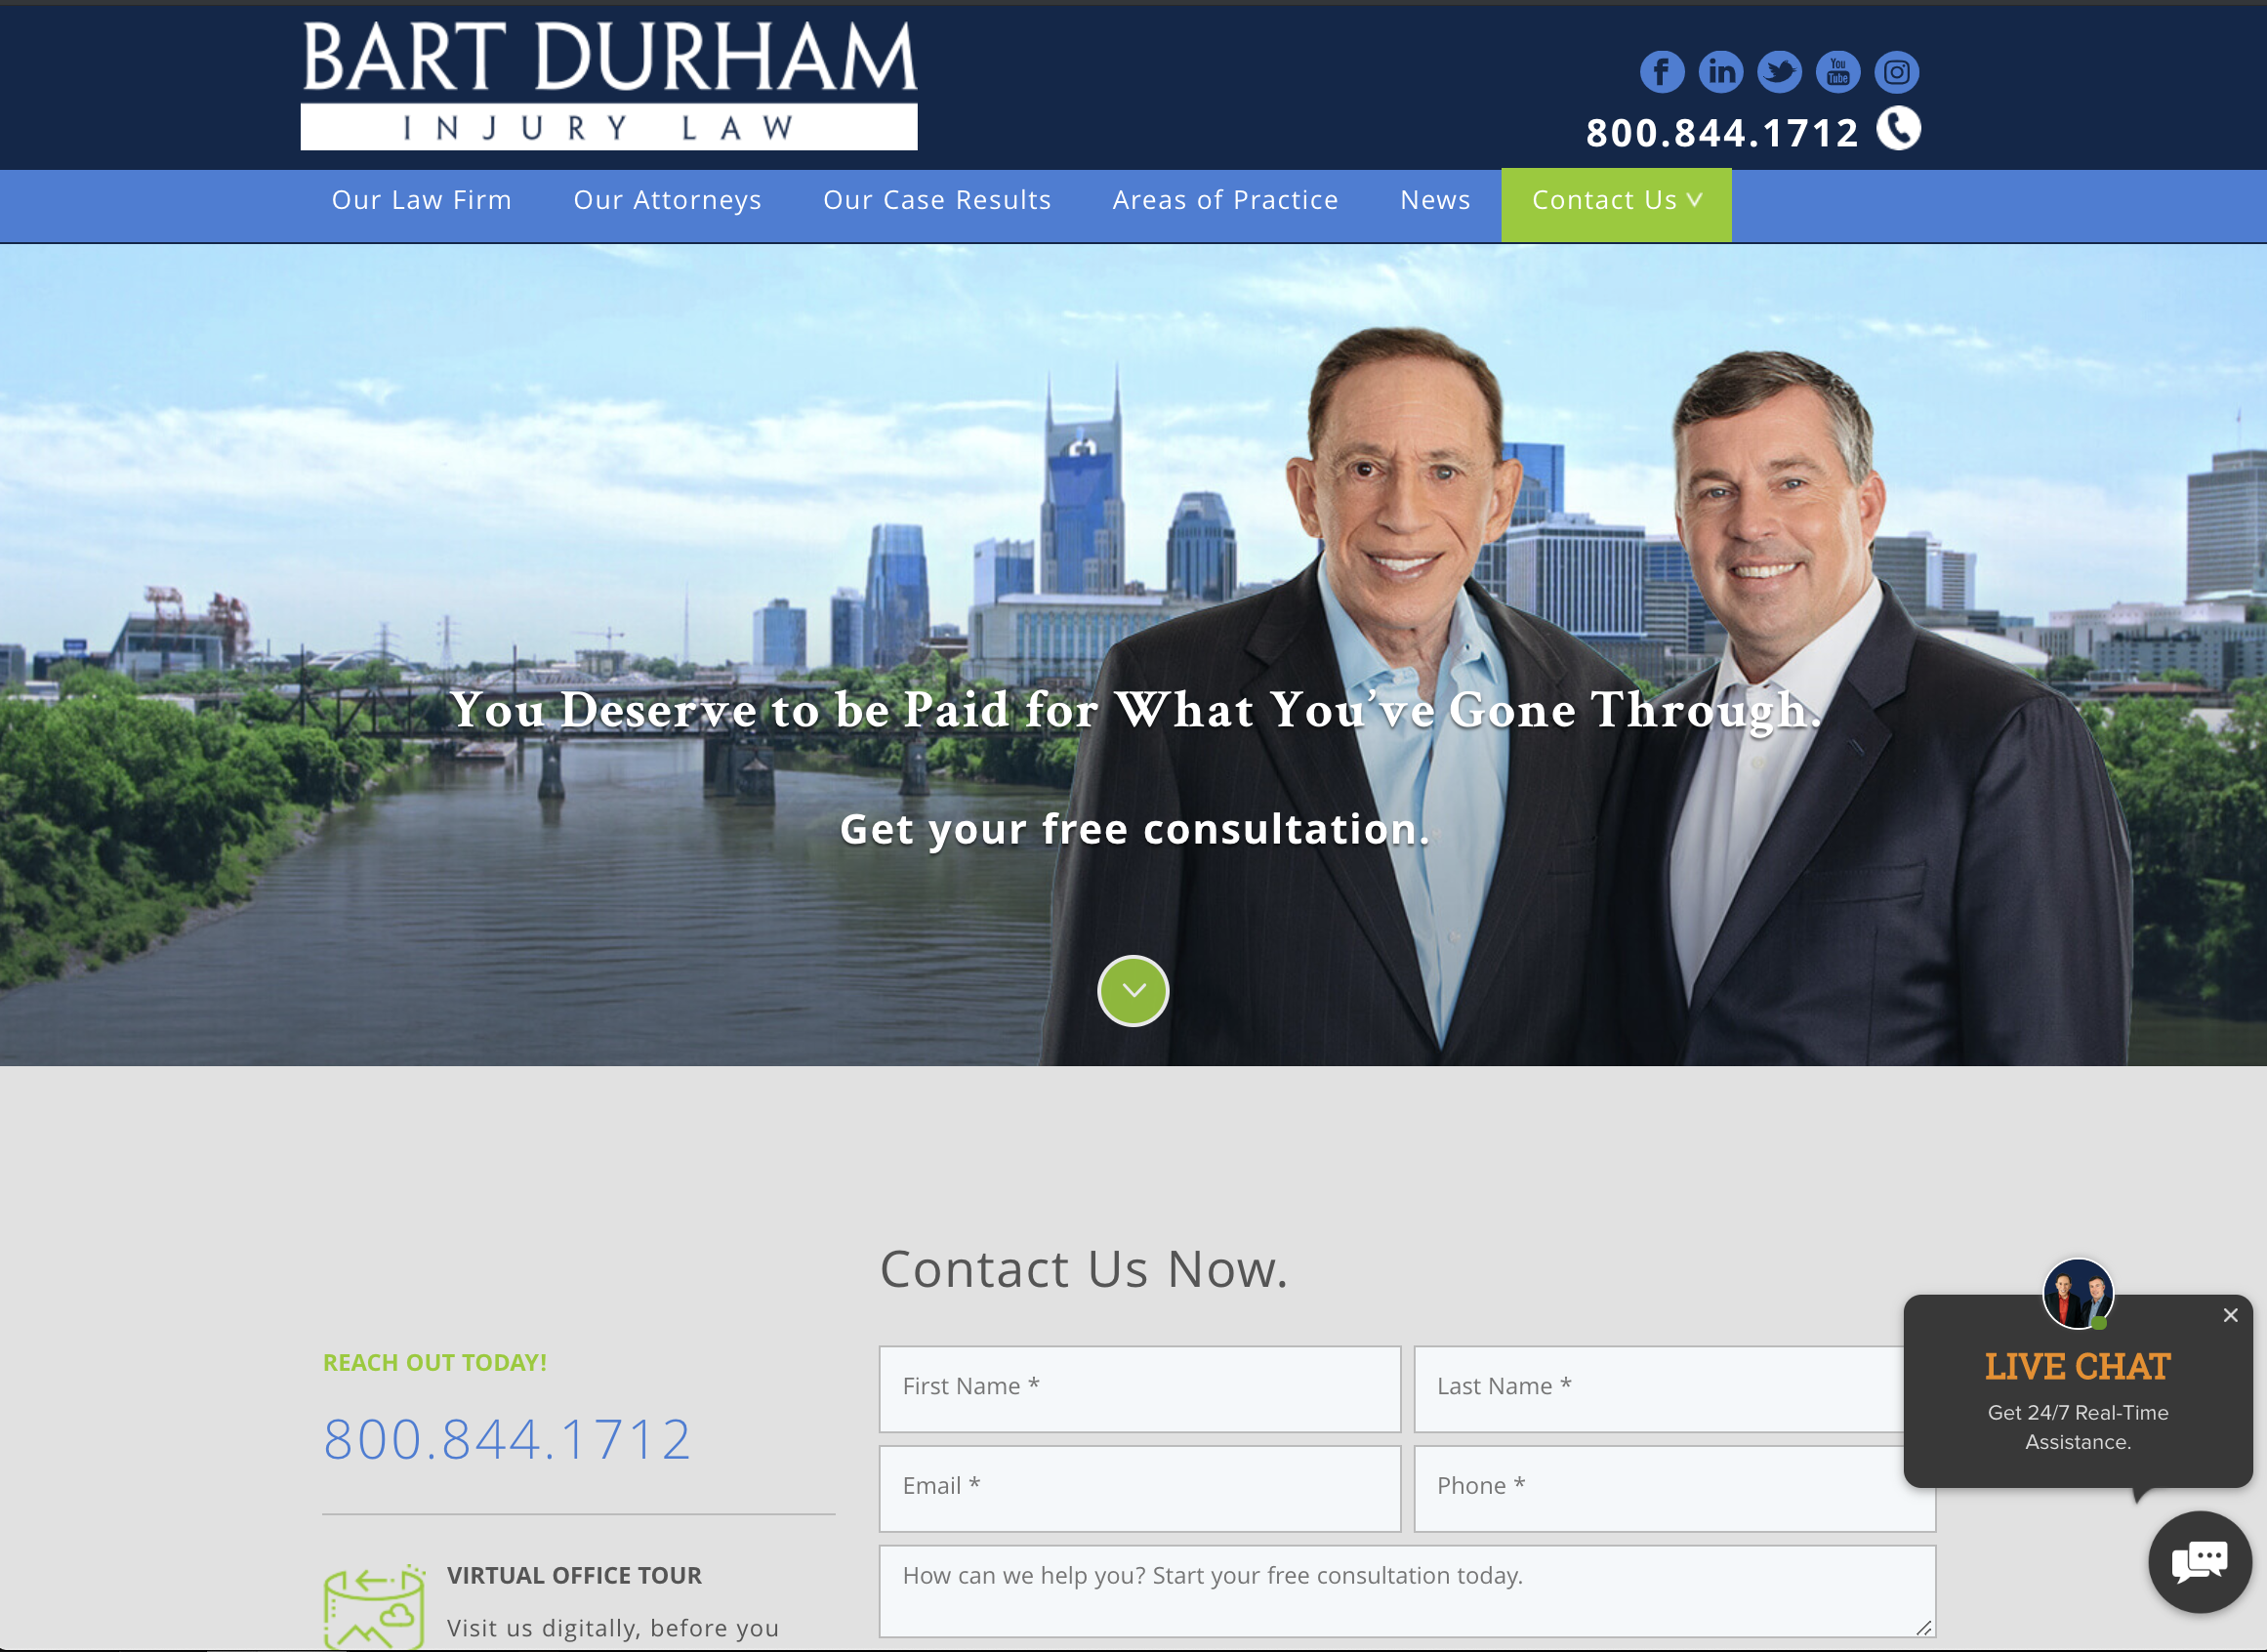 Bart Durham Injury Law works with Horton Group, a Nashville Web Design and Web Development Agency offering Digital Marketing Services